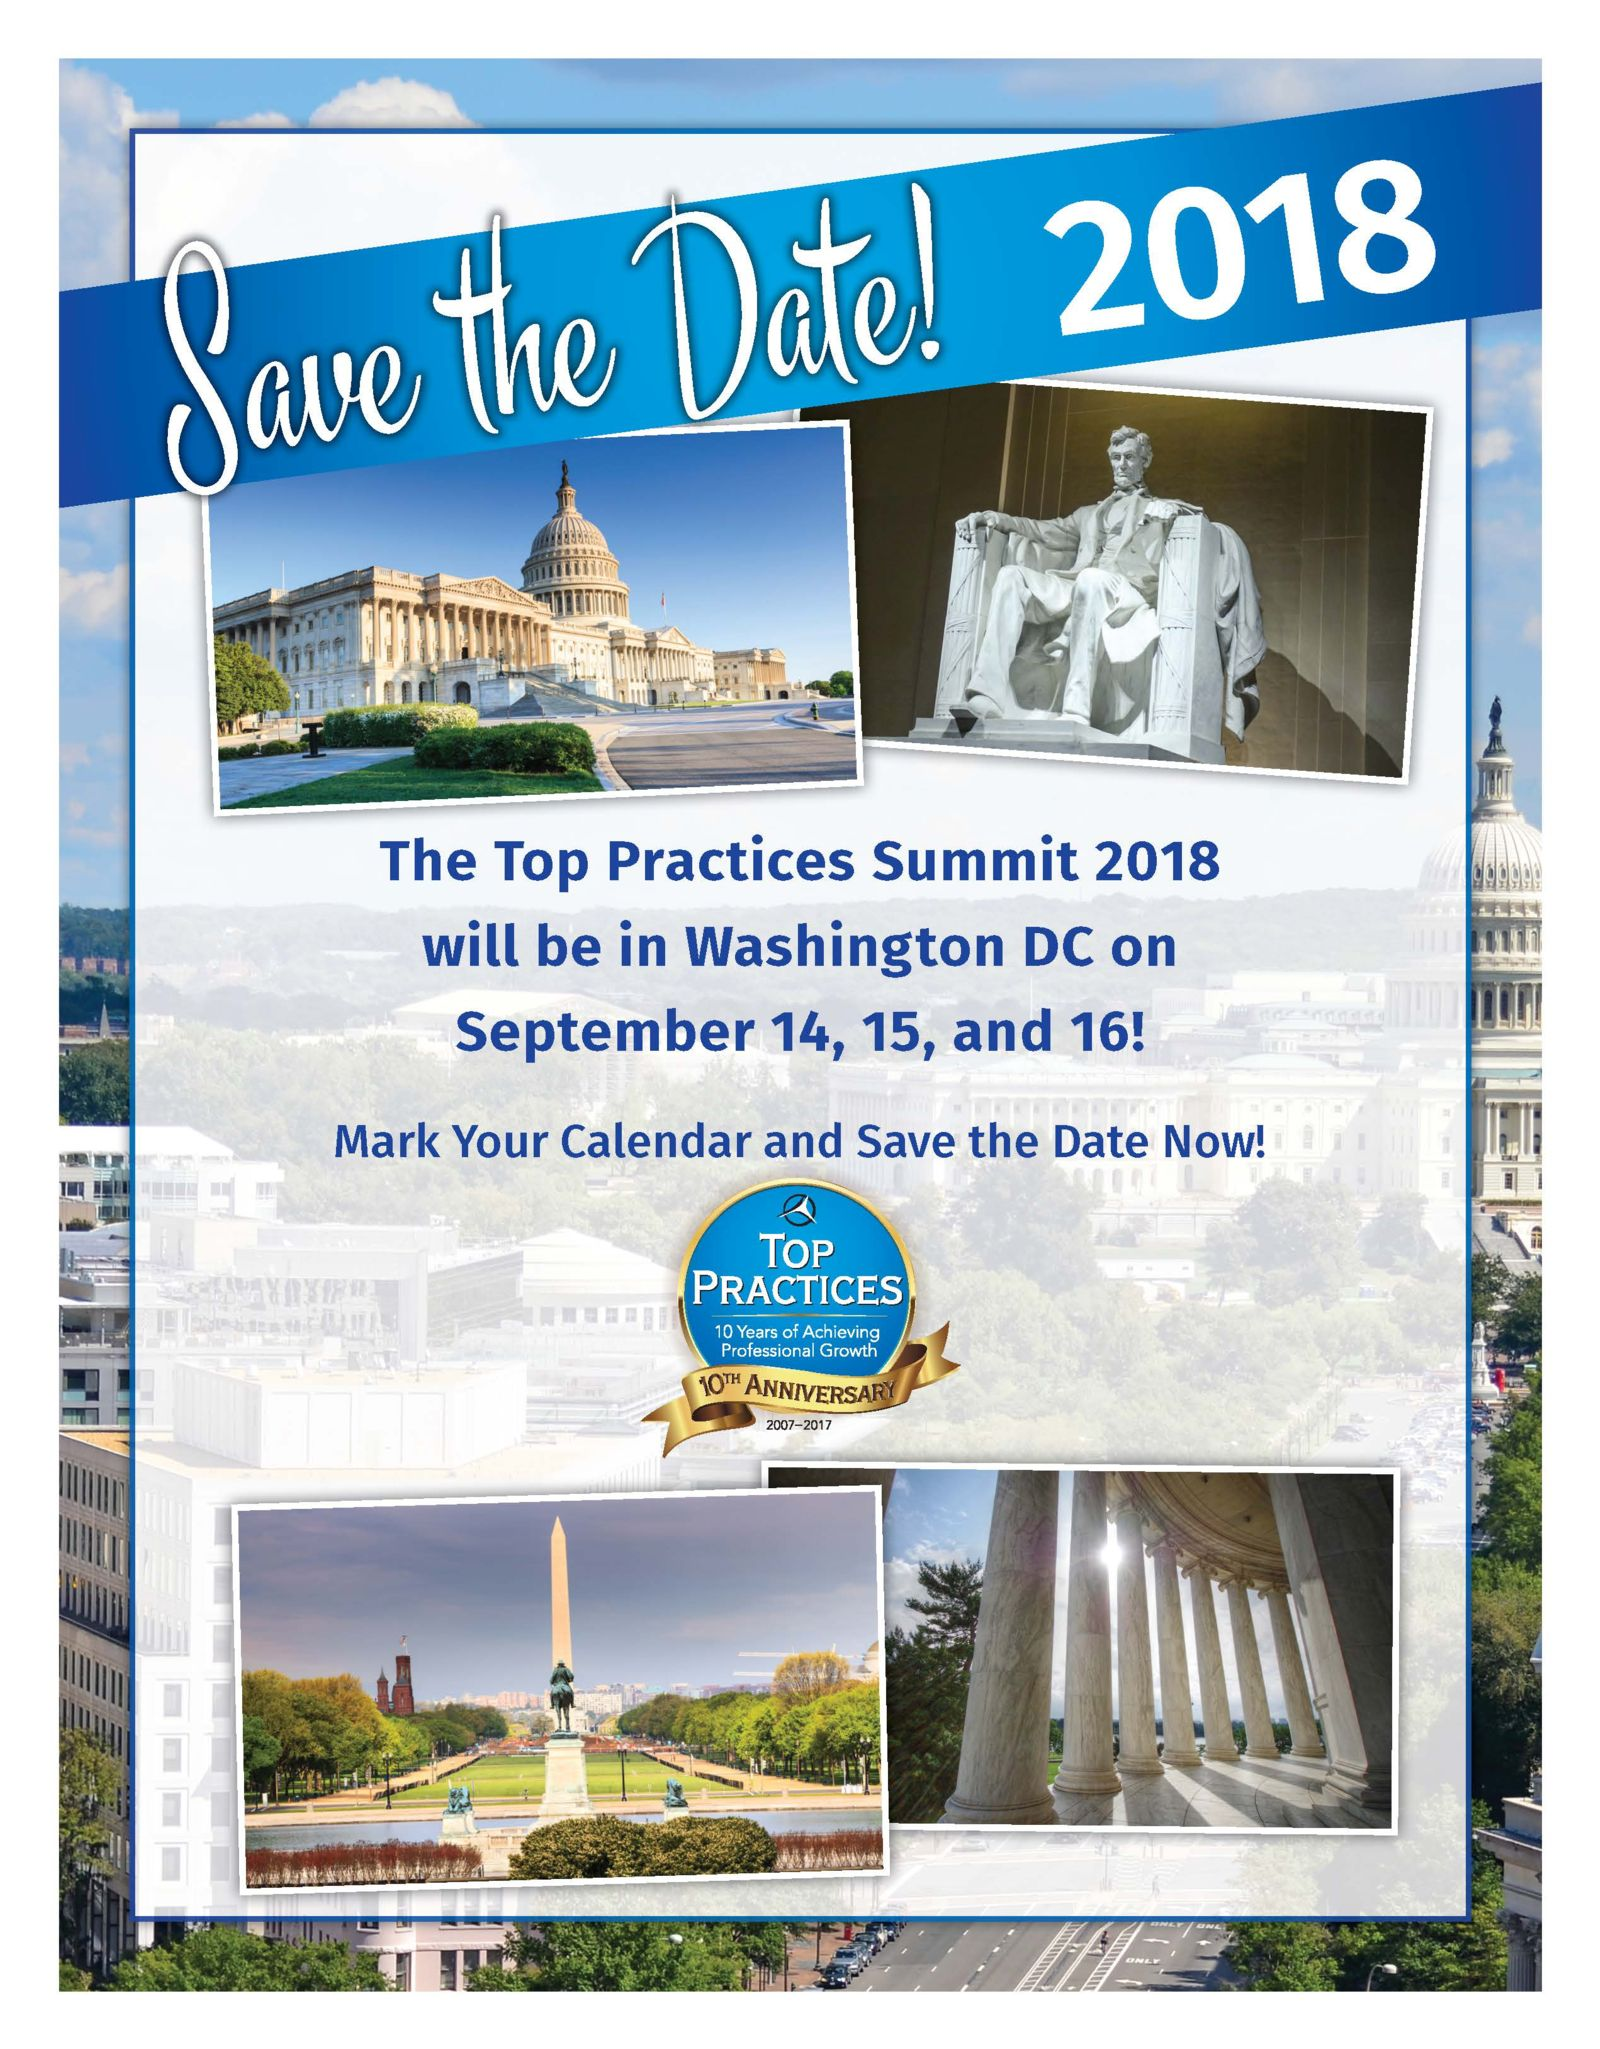 Save the Date for the Top Practices Summit 2018